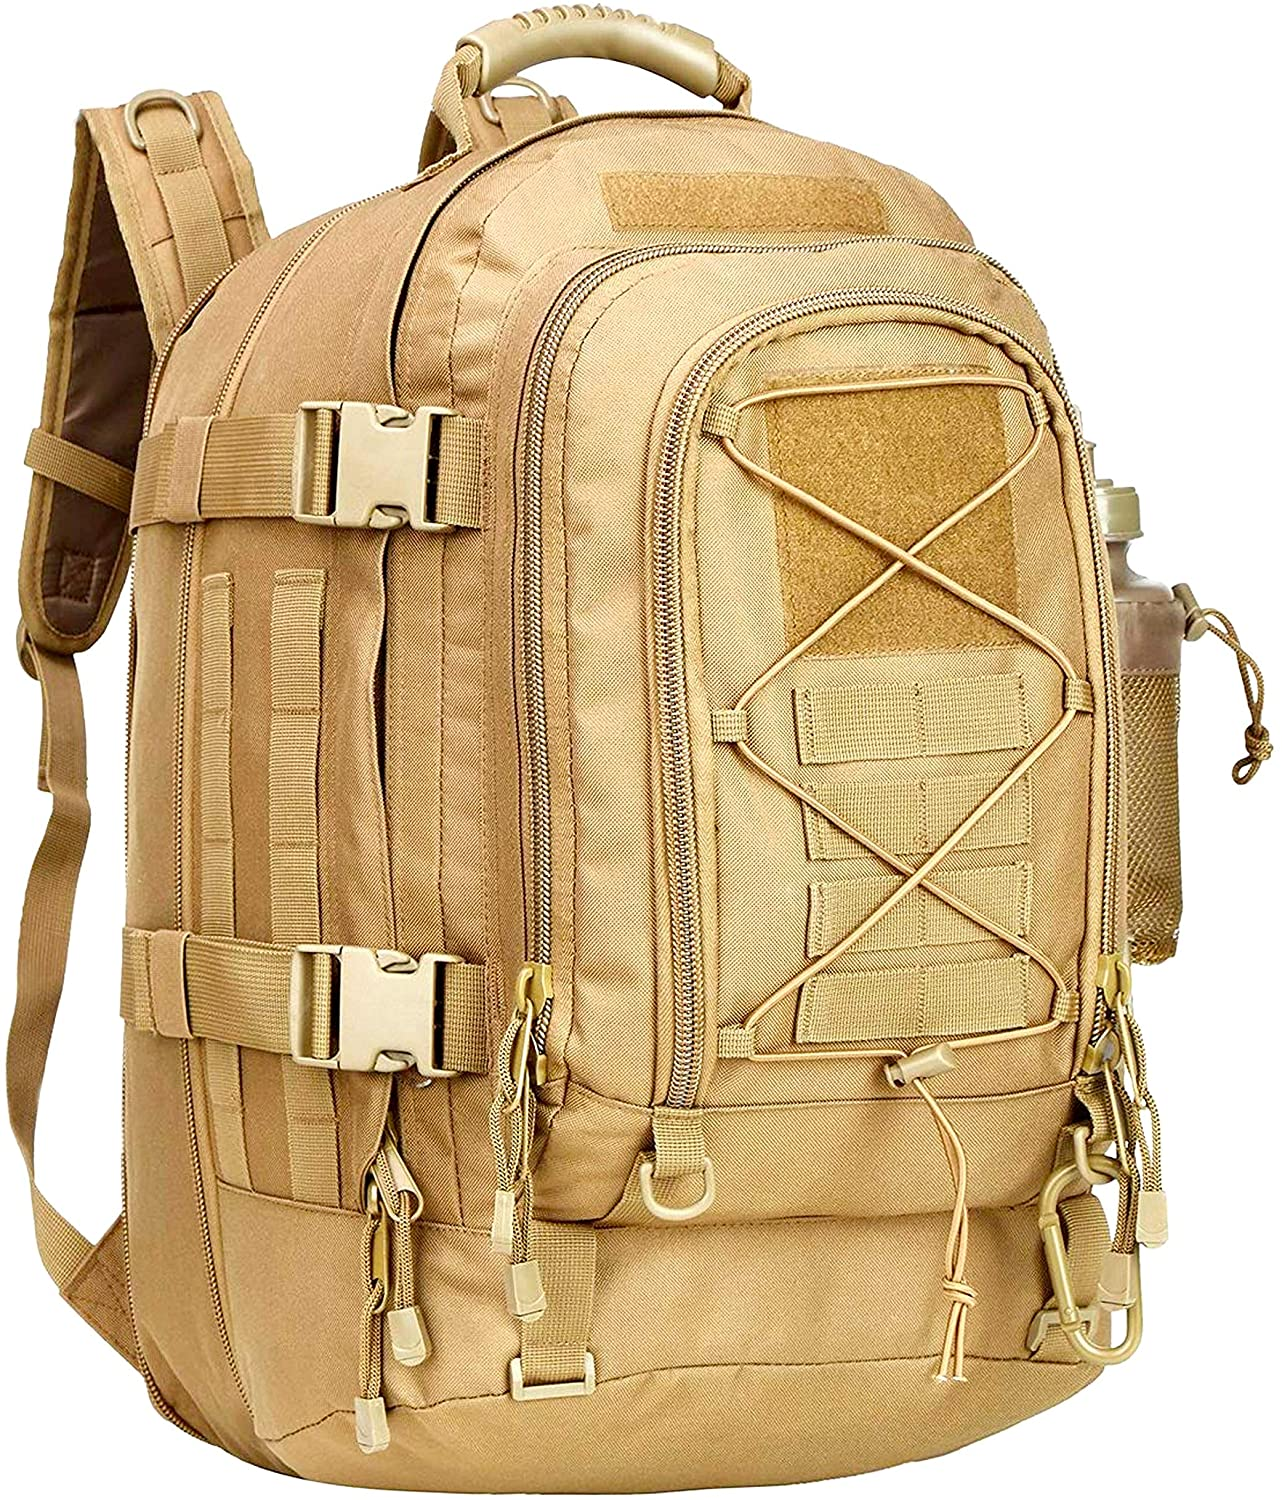 Scorpion Tactics 3 Day Expandable Outdoor Large Backpack Tactical Backpack Army Assault Rucksack Pack Bug Out Bag ST-LAB202001